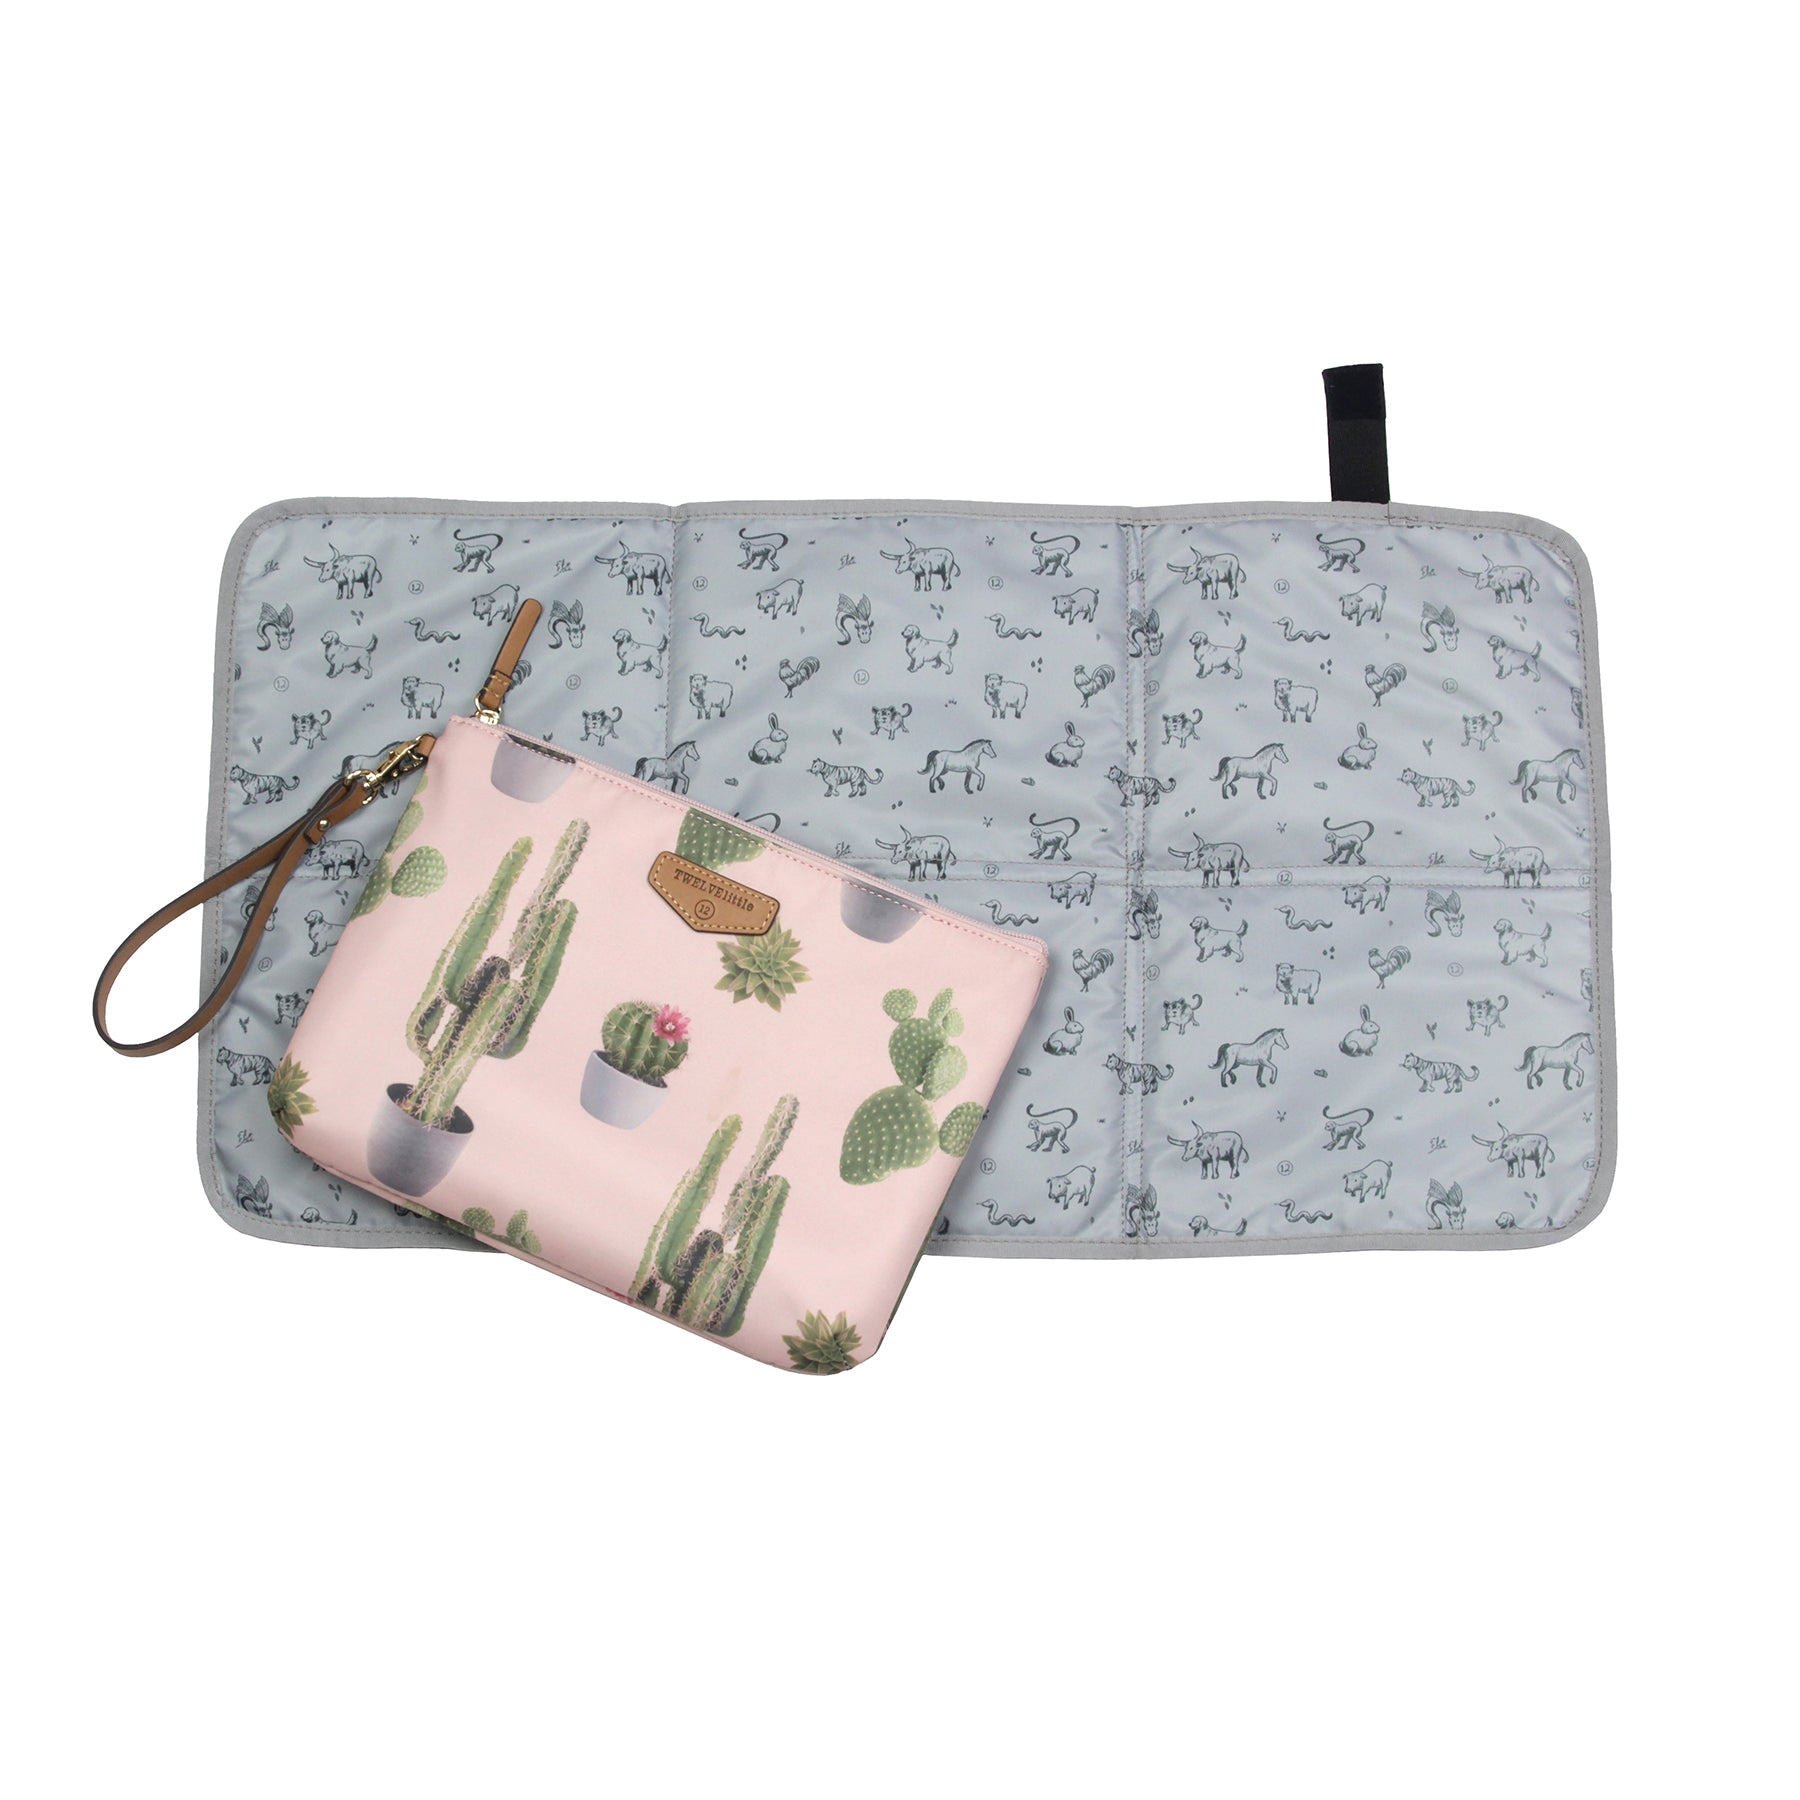 Changing pad laid out with cactus diaper pouch laying on top